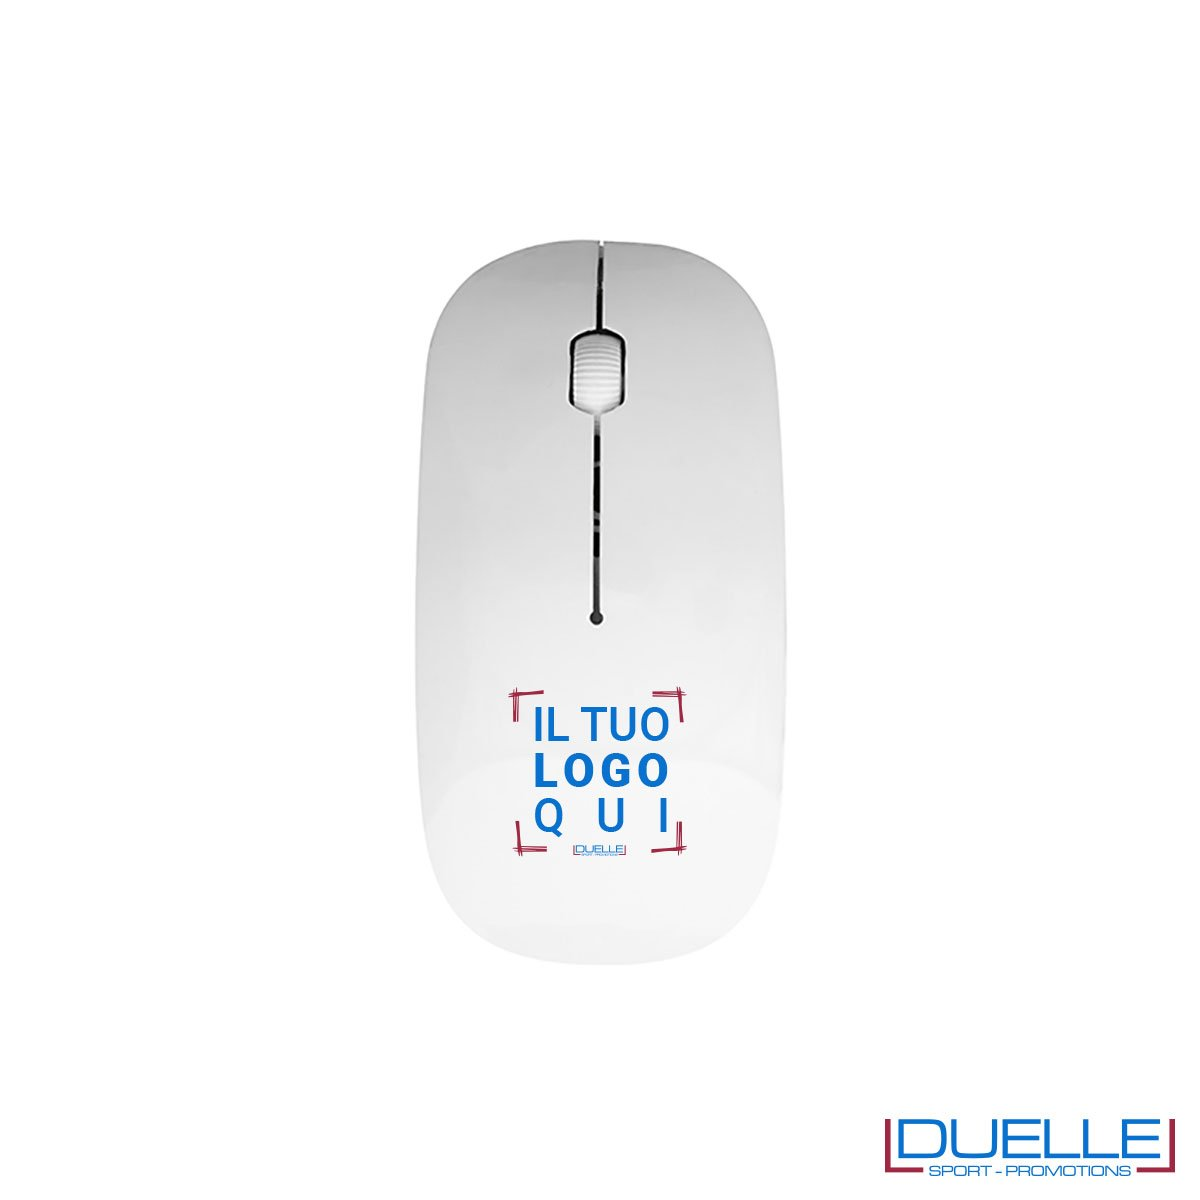 Mouse wireless personalizzabile con stampe colorate